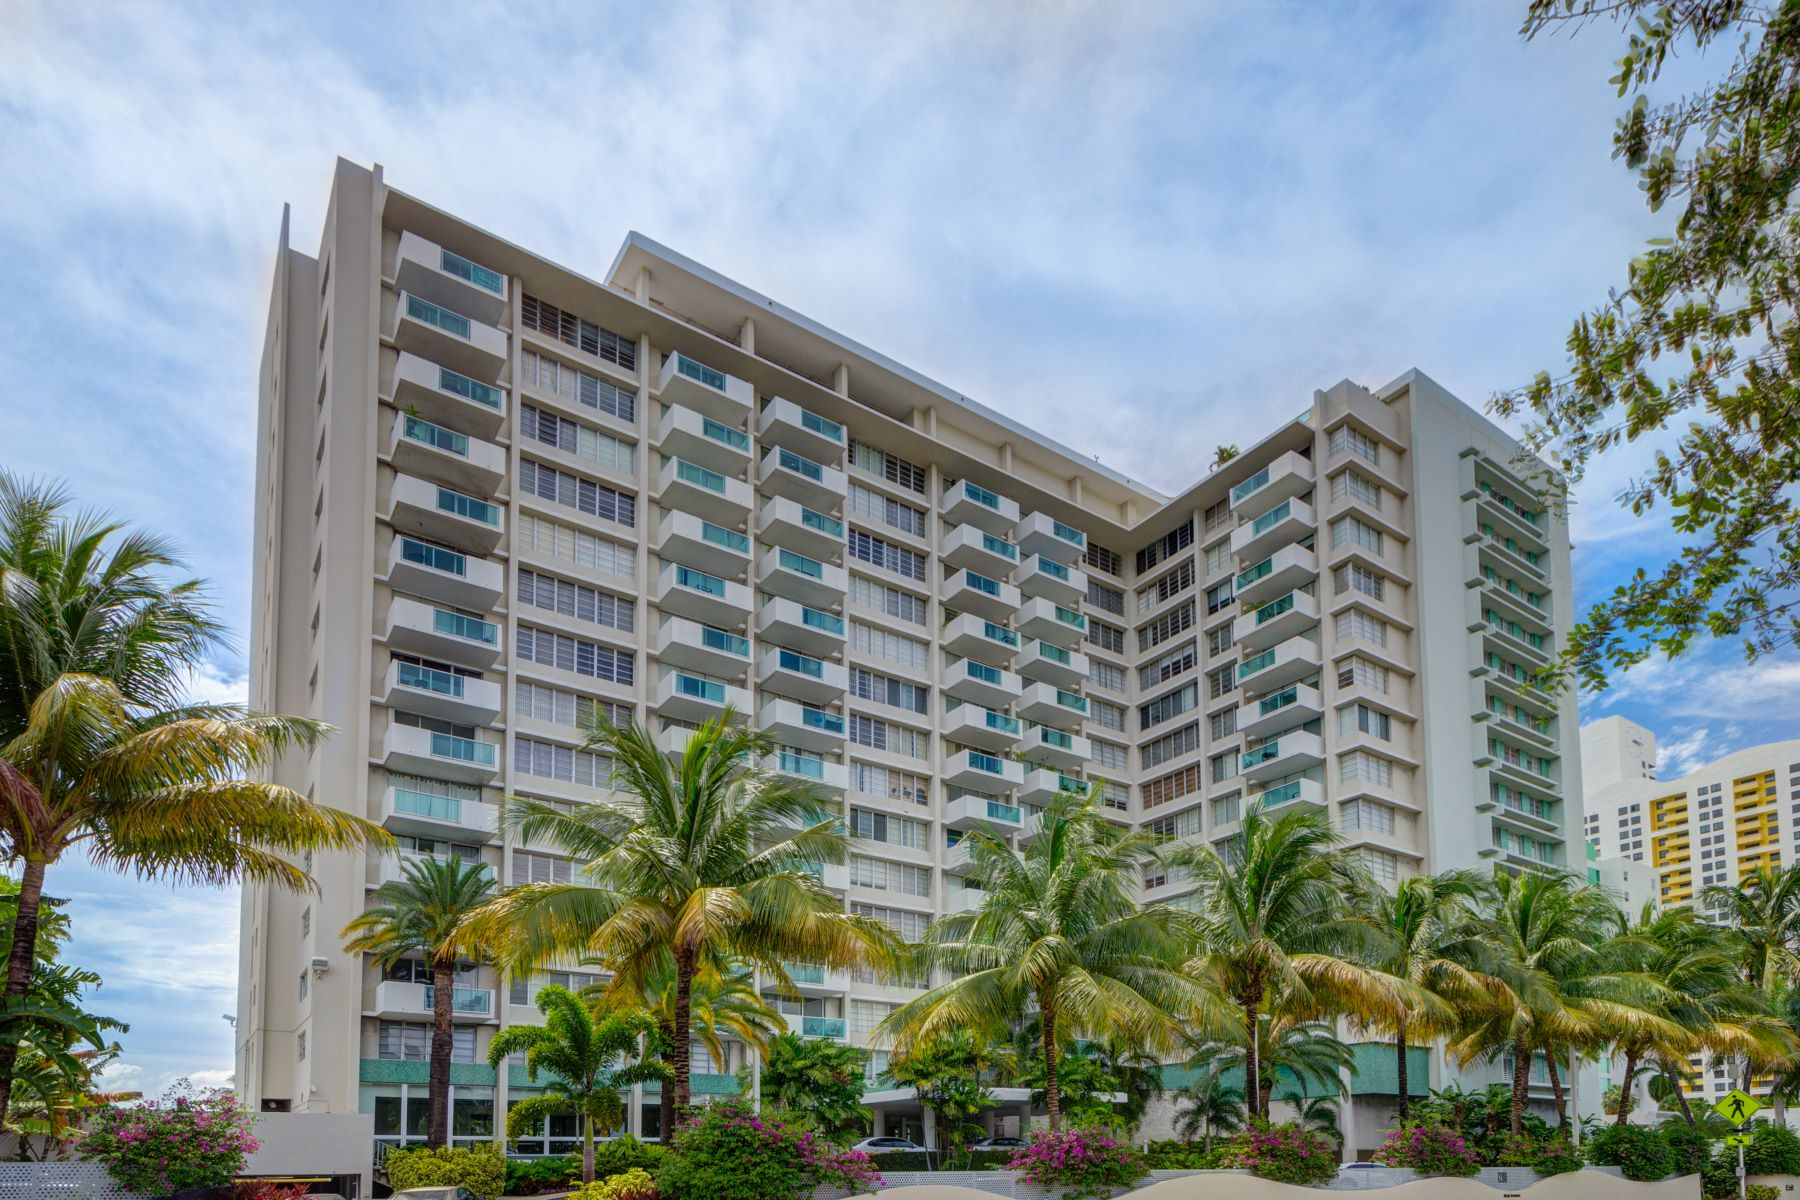 Condominium for Sale at 1000 West Ave #1008 1000 West Ave 1008 Miami Beach, Florida, 33139 United States